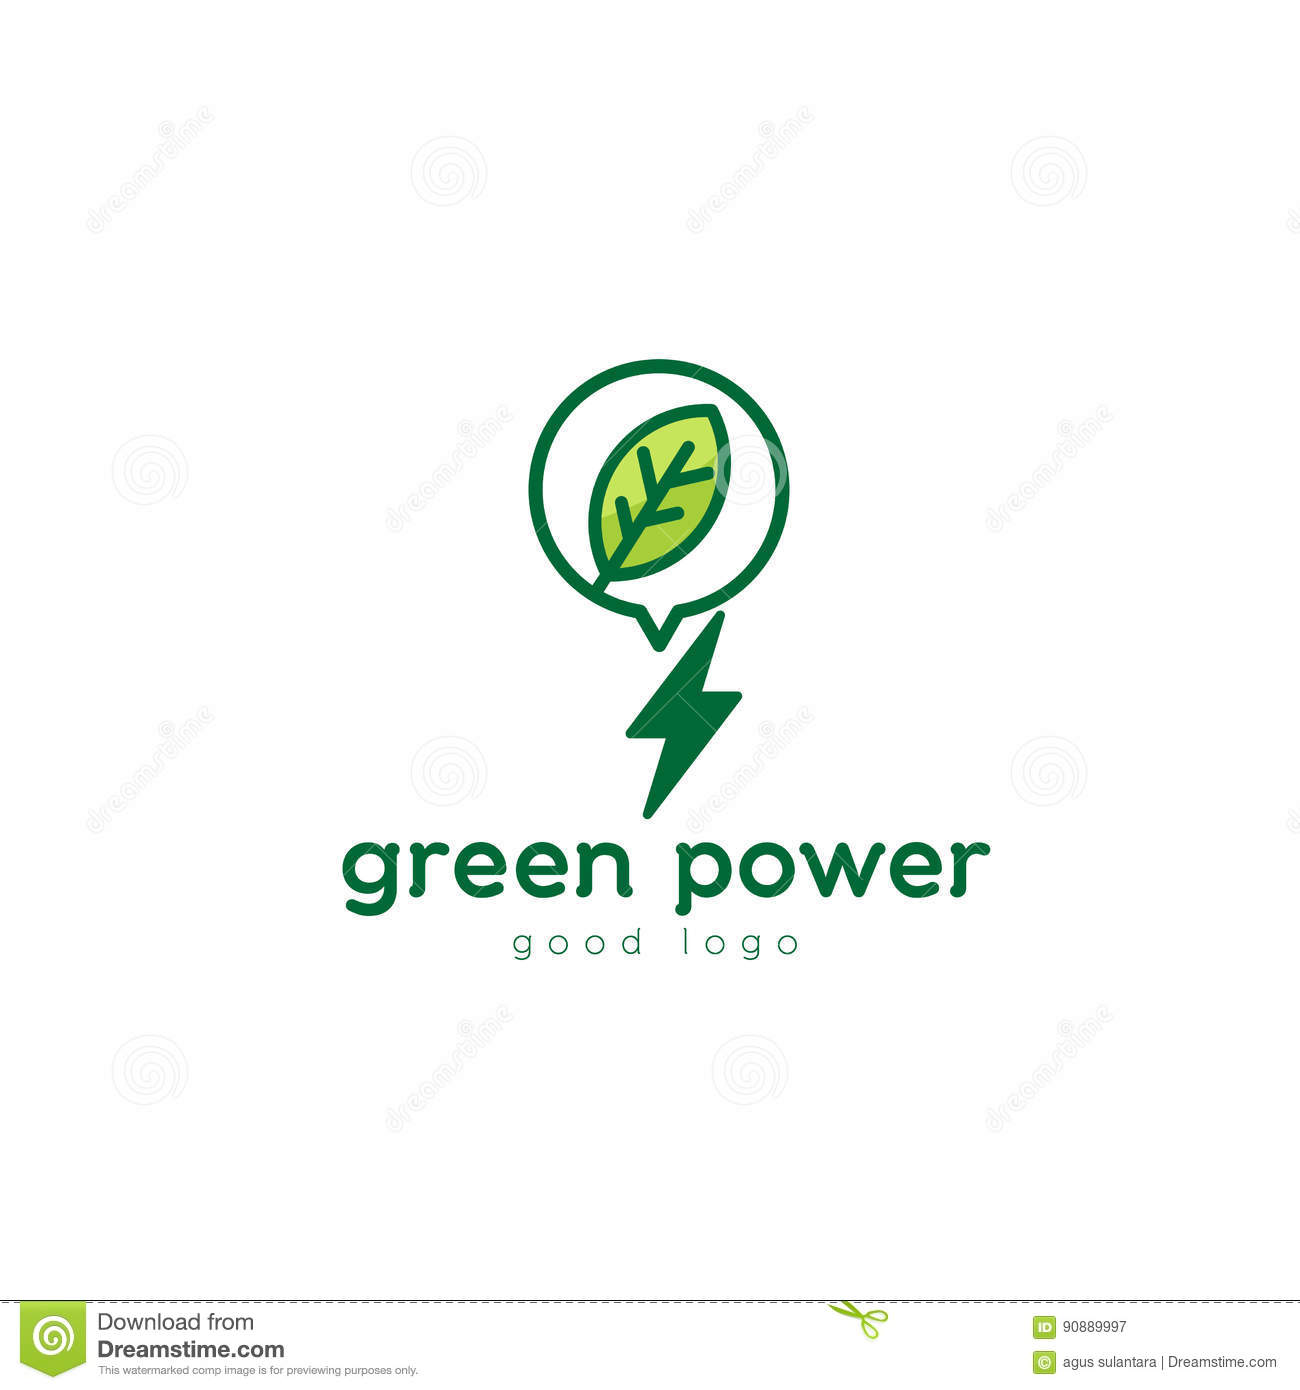 Green Power Nature Leaf Logo Design Stock Vector - Illustration of ... for Logo Design Samples Free Download  584dqh